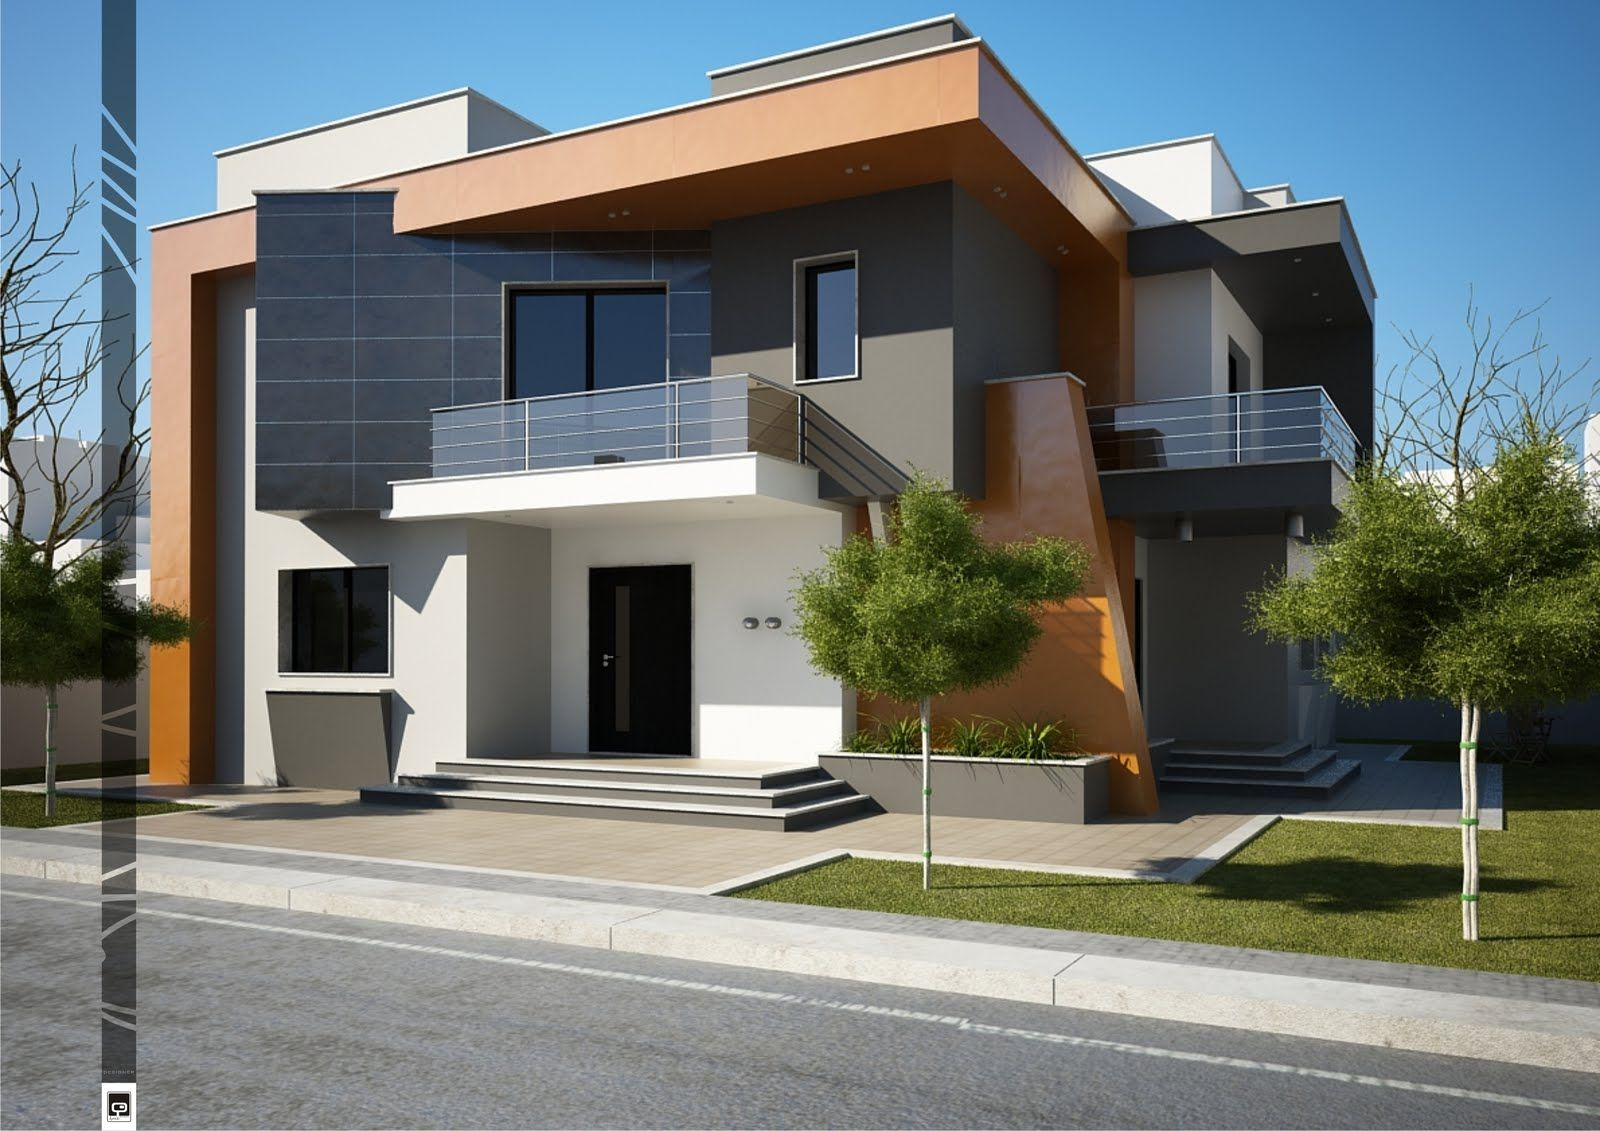 Architecture design 1 colores de exterior casas for Casa minimalista exterior